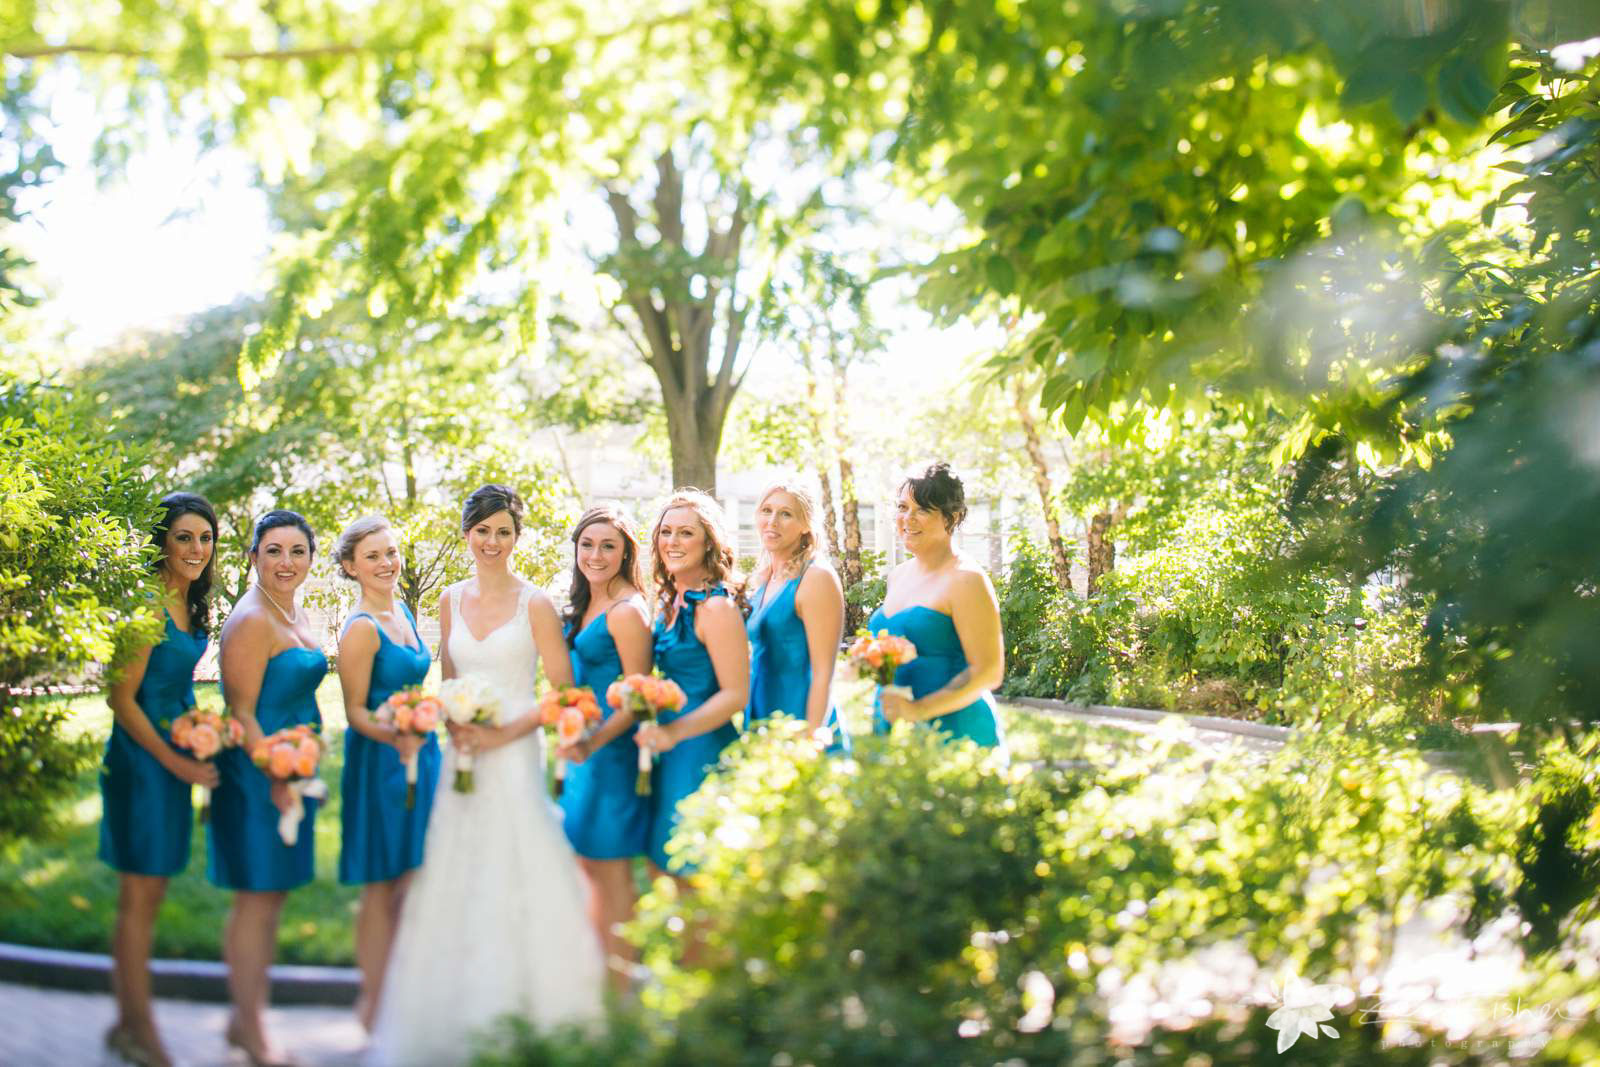 Bridal party portraits on sunny fall day in garden, branches of leaves vines cascading around them.